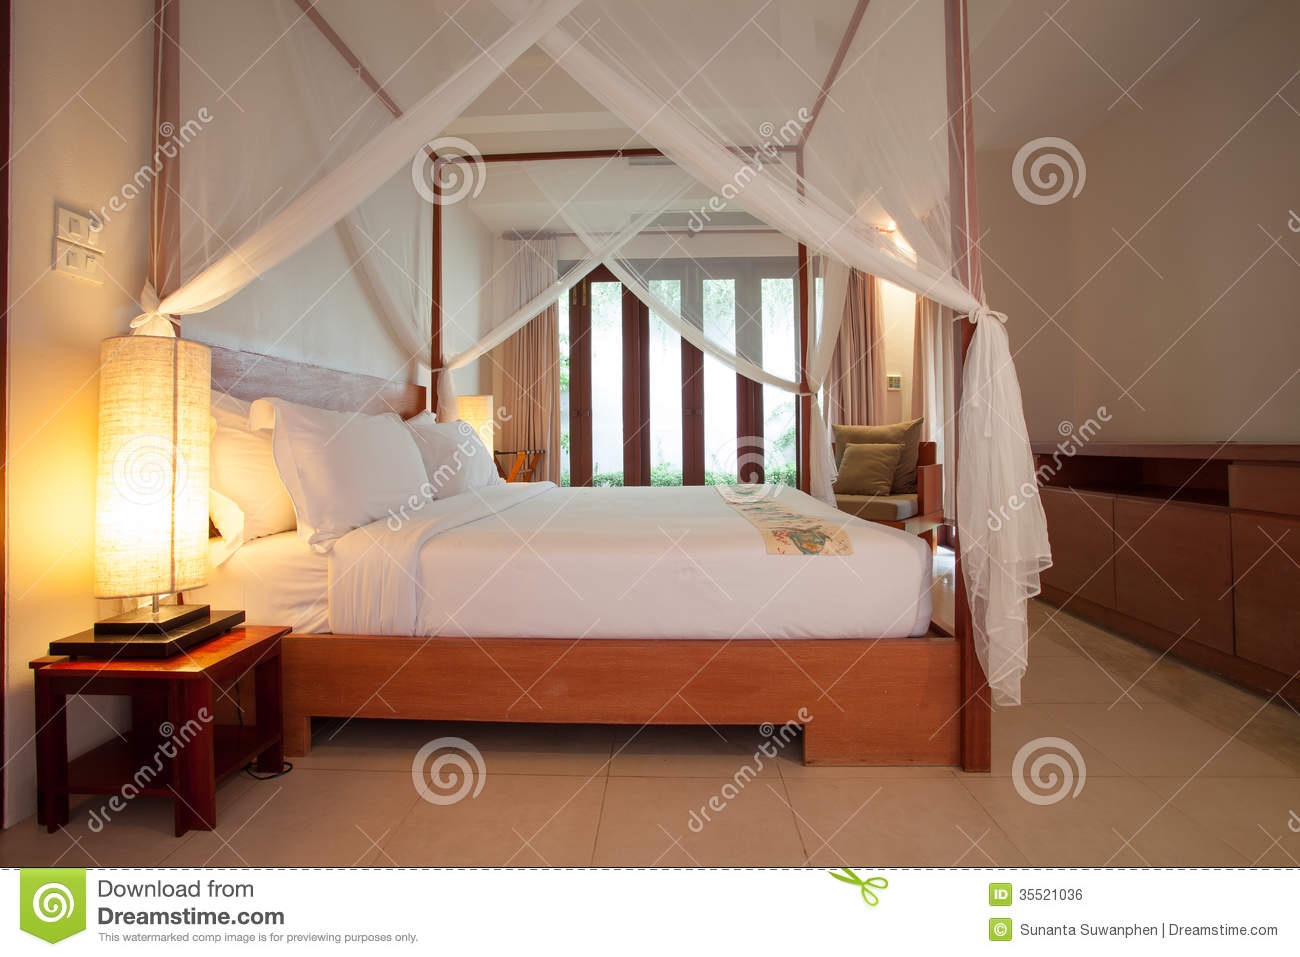 Sleeping Room With Fourposter Bed Royalty Free Stock Image  Image 35521036